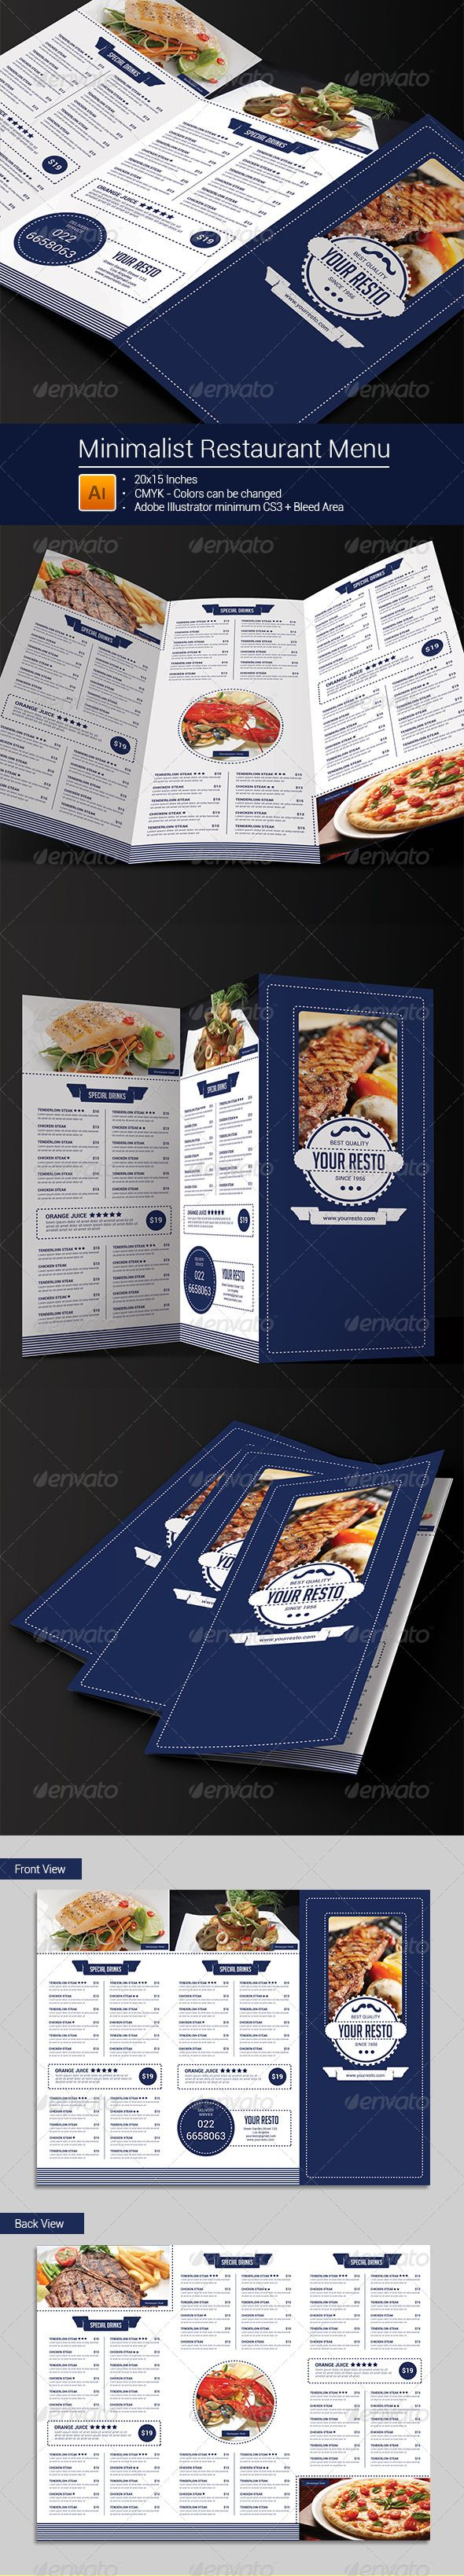 Minimalist Trifold Restaurant Menu — Vector EPS #vintage #food menu • Download ➝ https://graphicriver.net/item/minimalist-trifold-restaurant-menu-/8245216?ref=pxcr